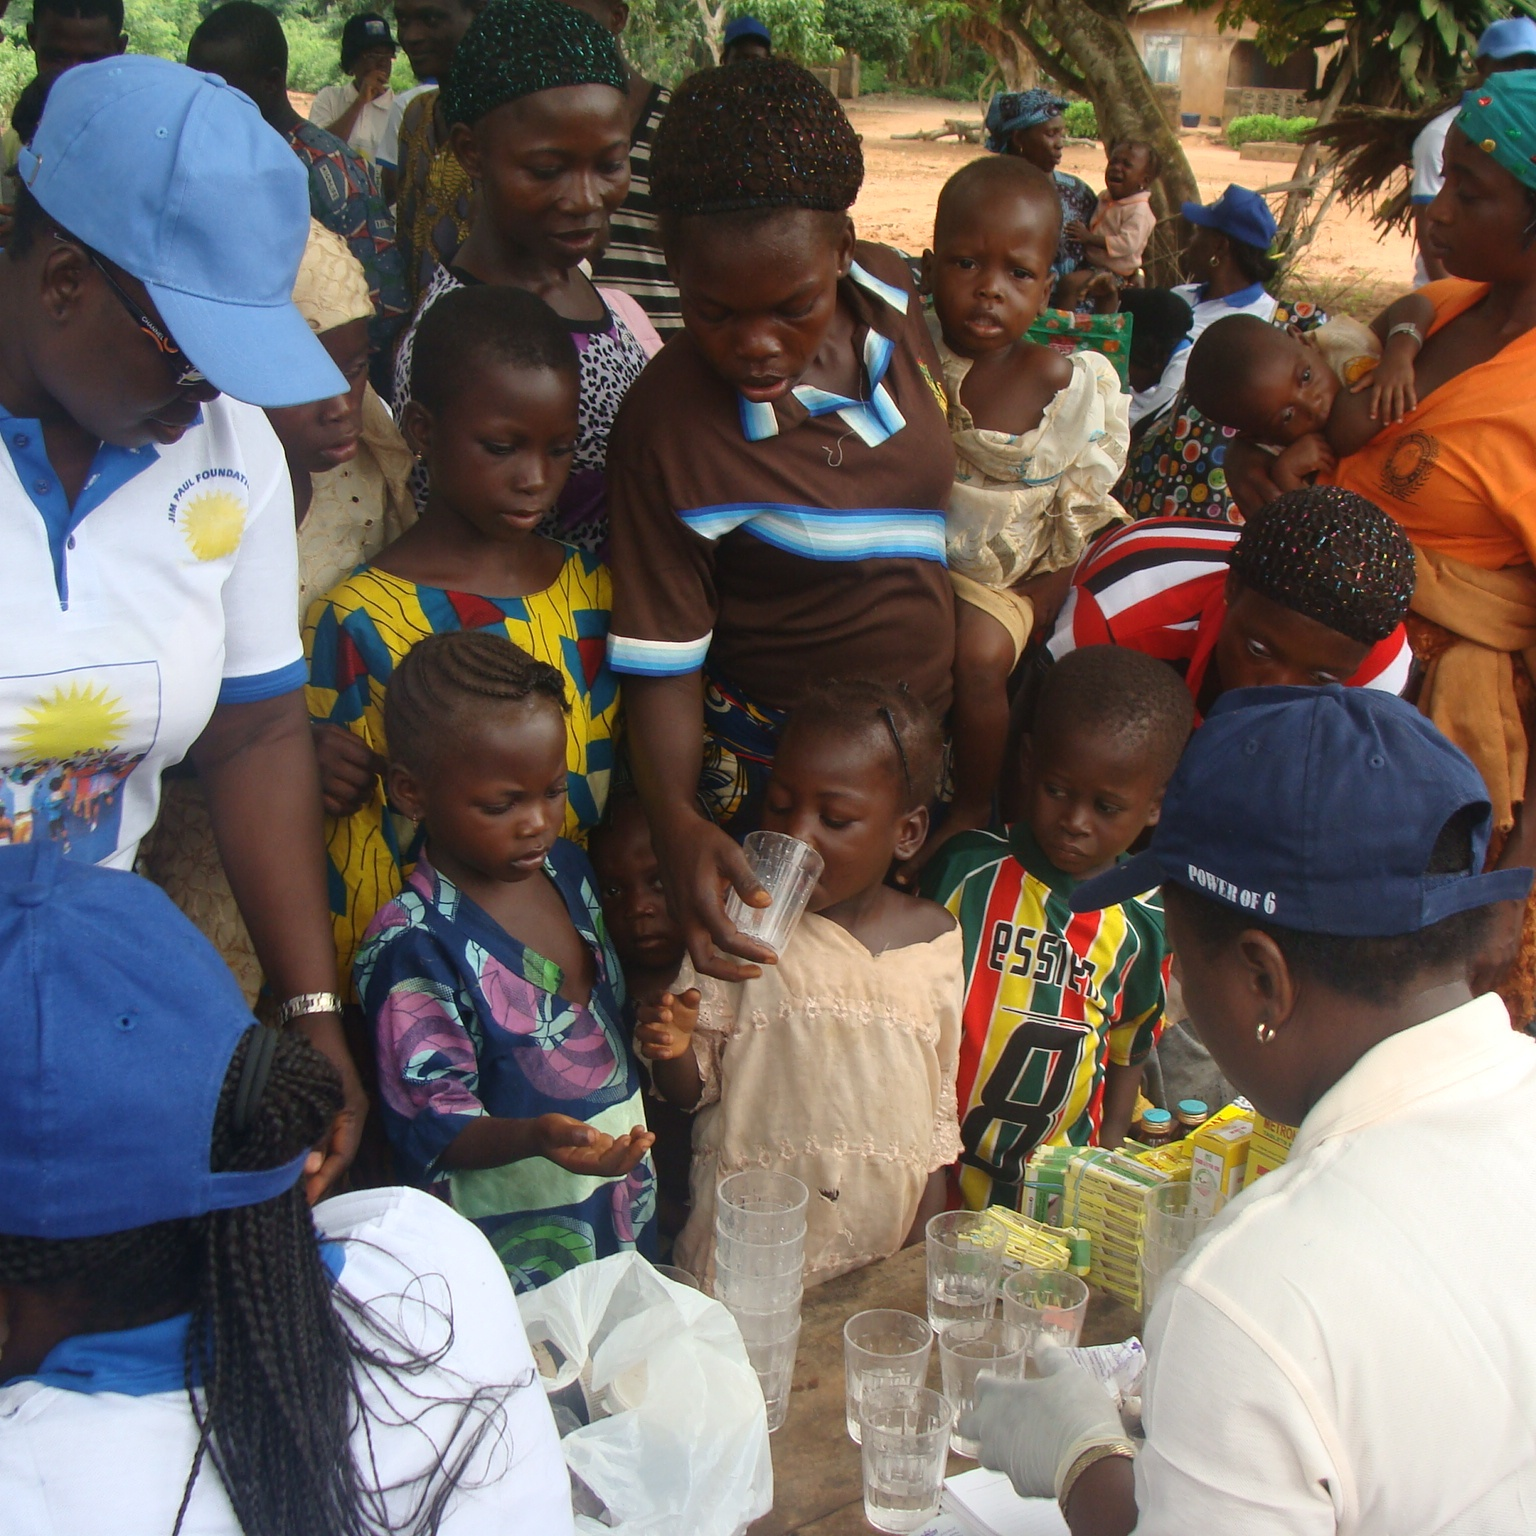 Deworming for children